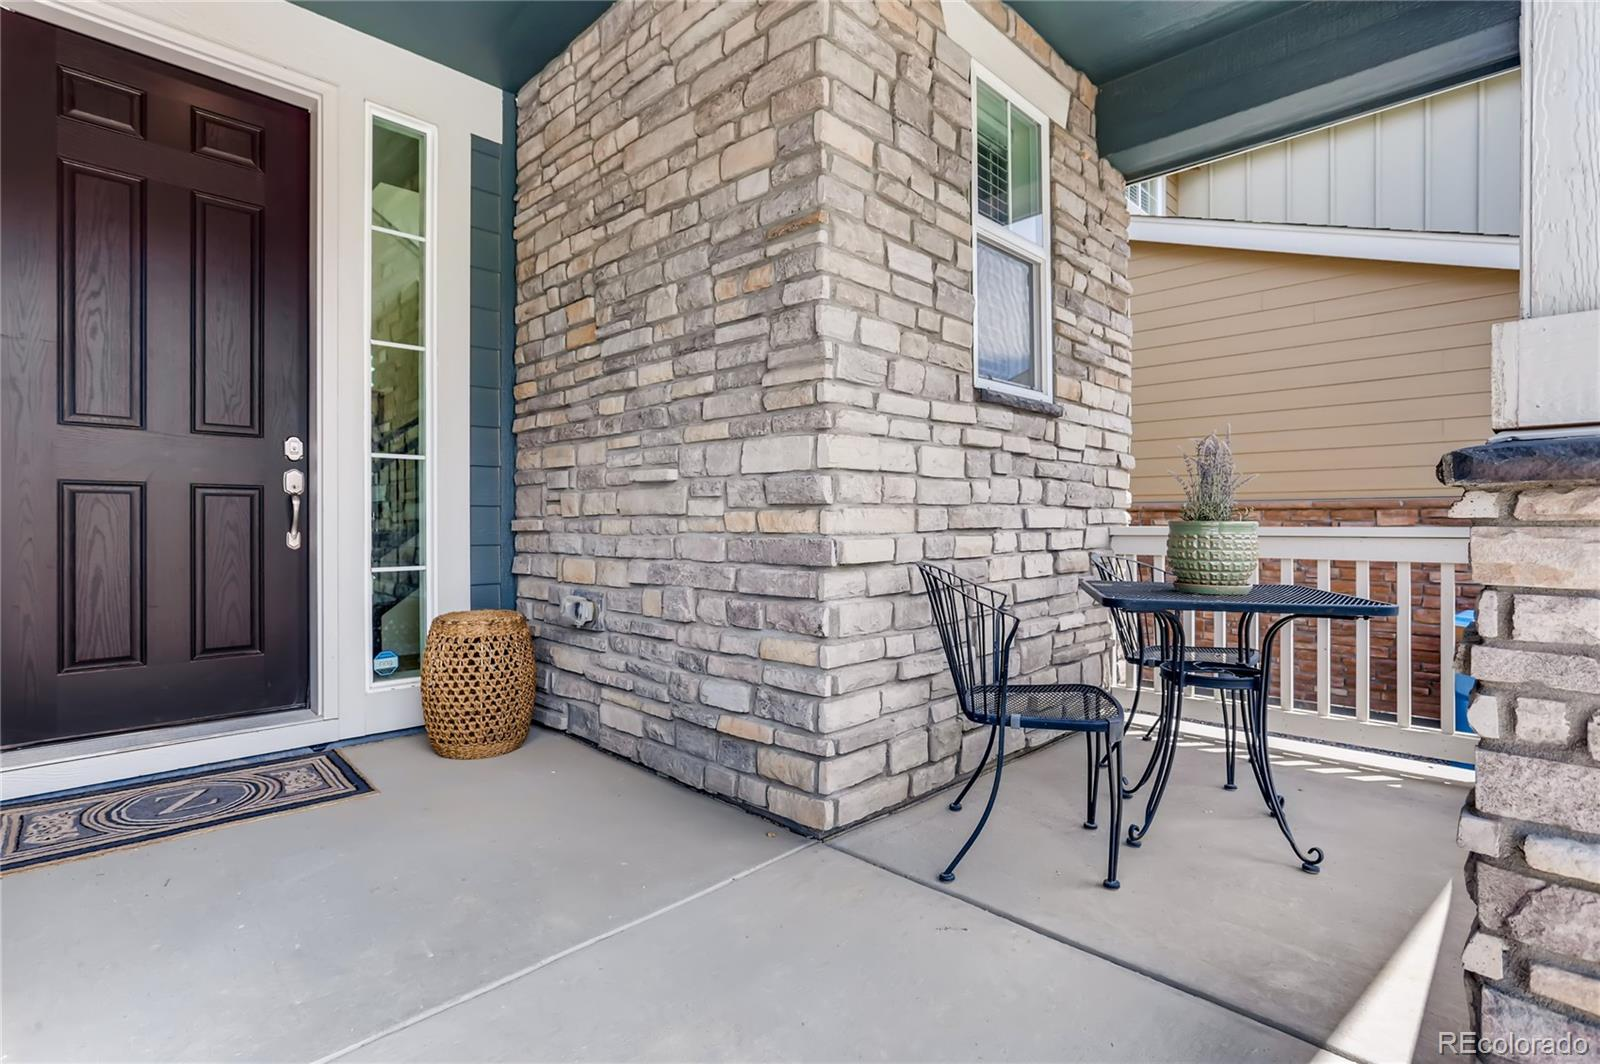 MLS# 2145354 - 5 - 26325 E Canal Place, Aurora, CO 80018